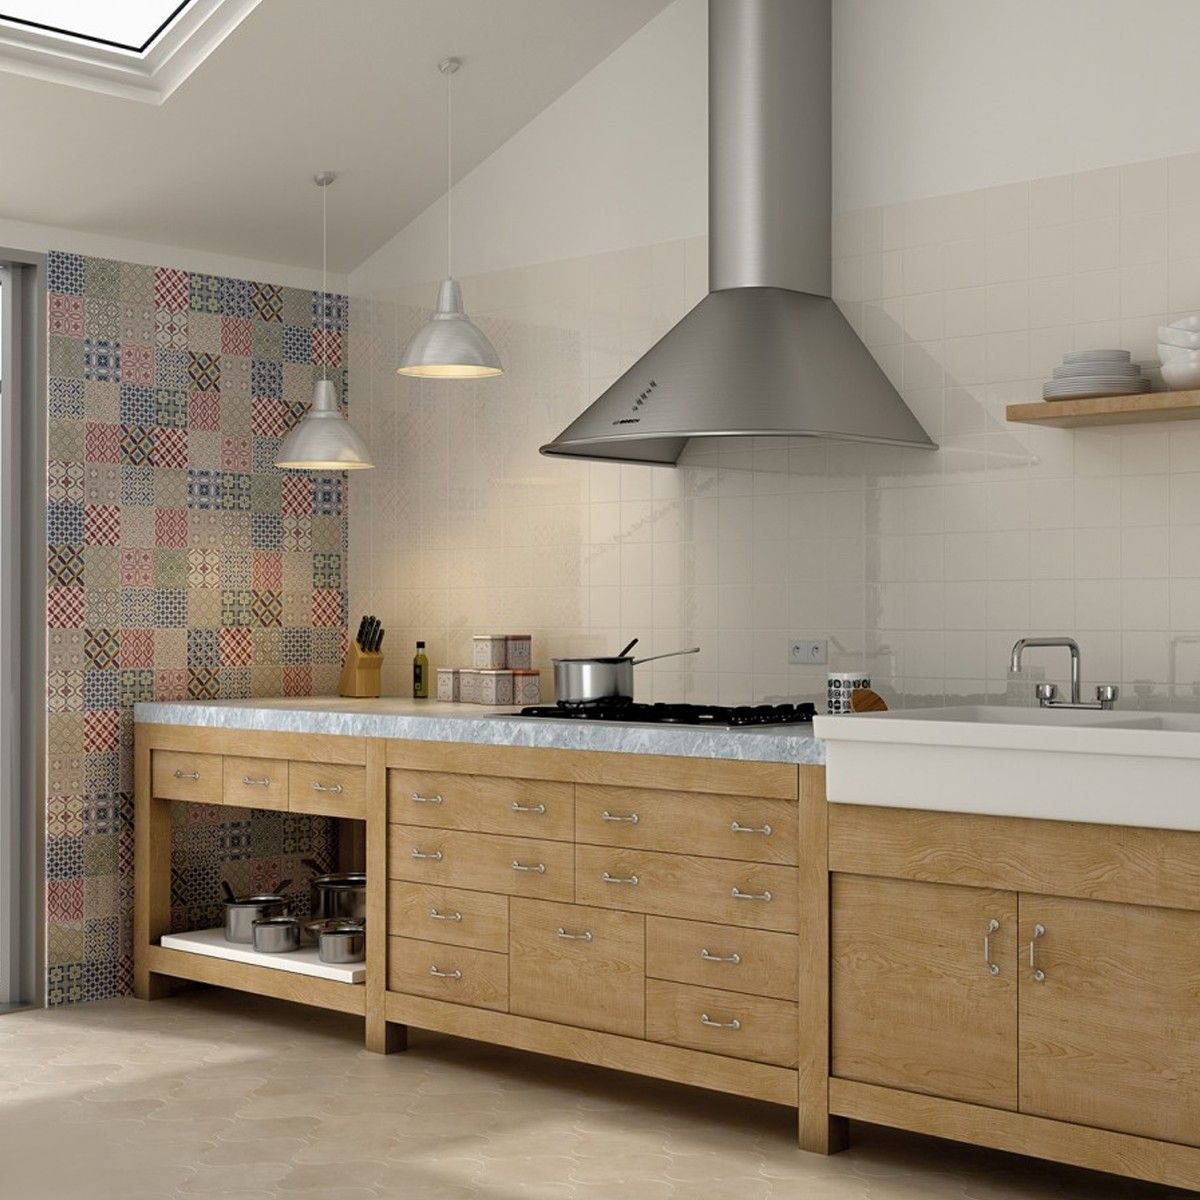 Wall Tiles For Kitchen 10x10 Kirkby Patchwork Kitchen Wall Tiles Wall Tiles Tile